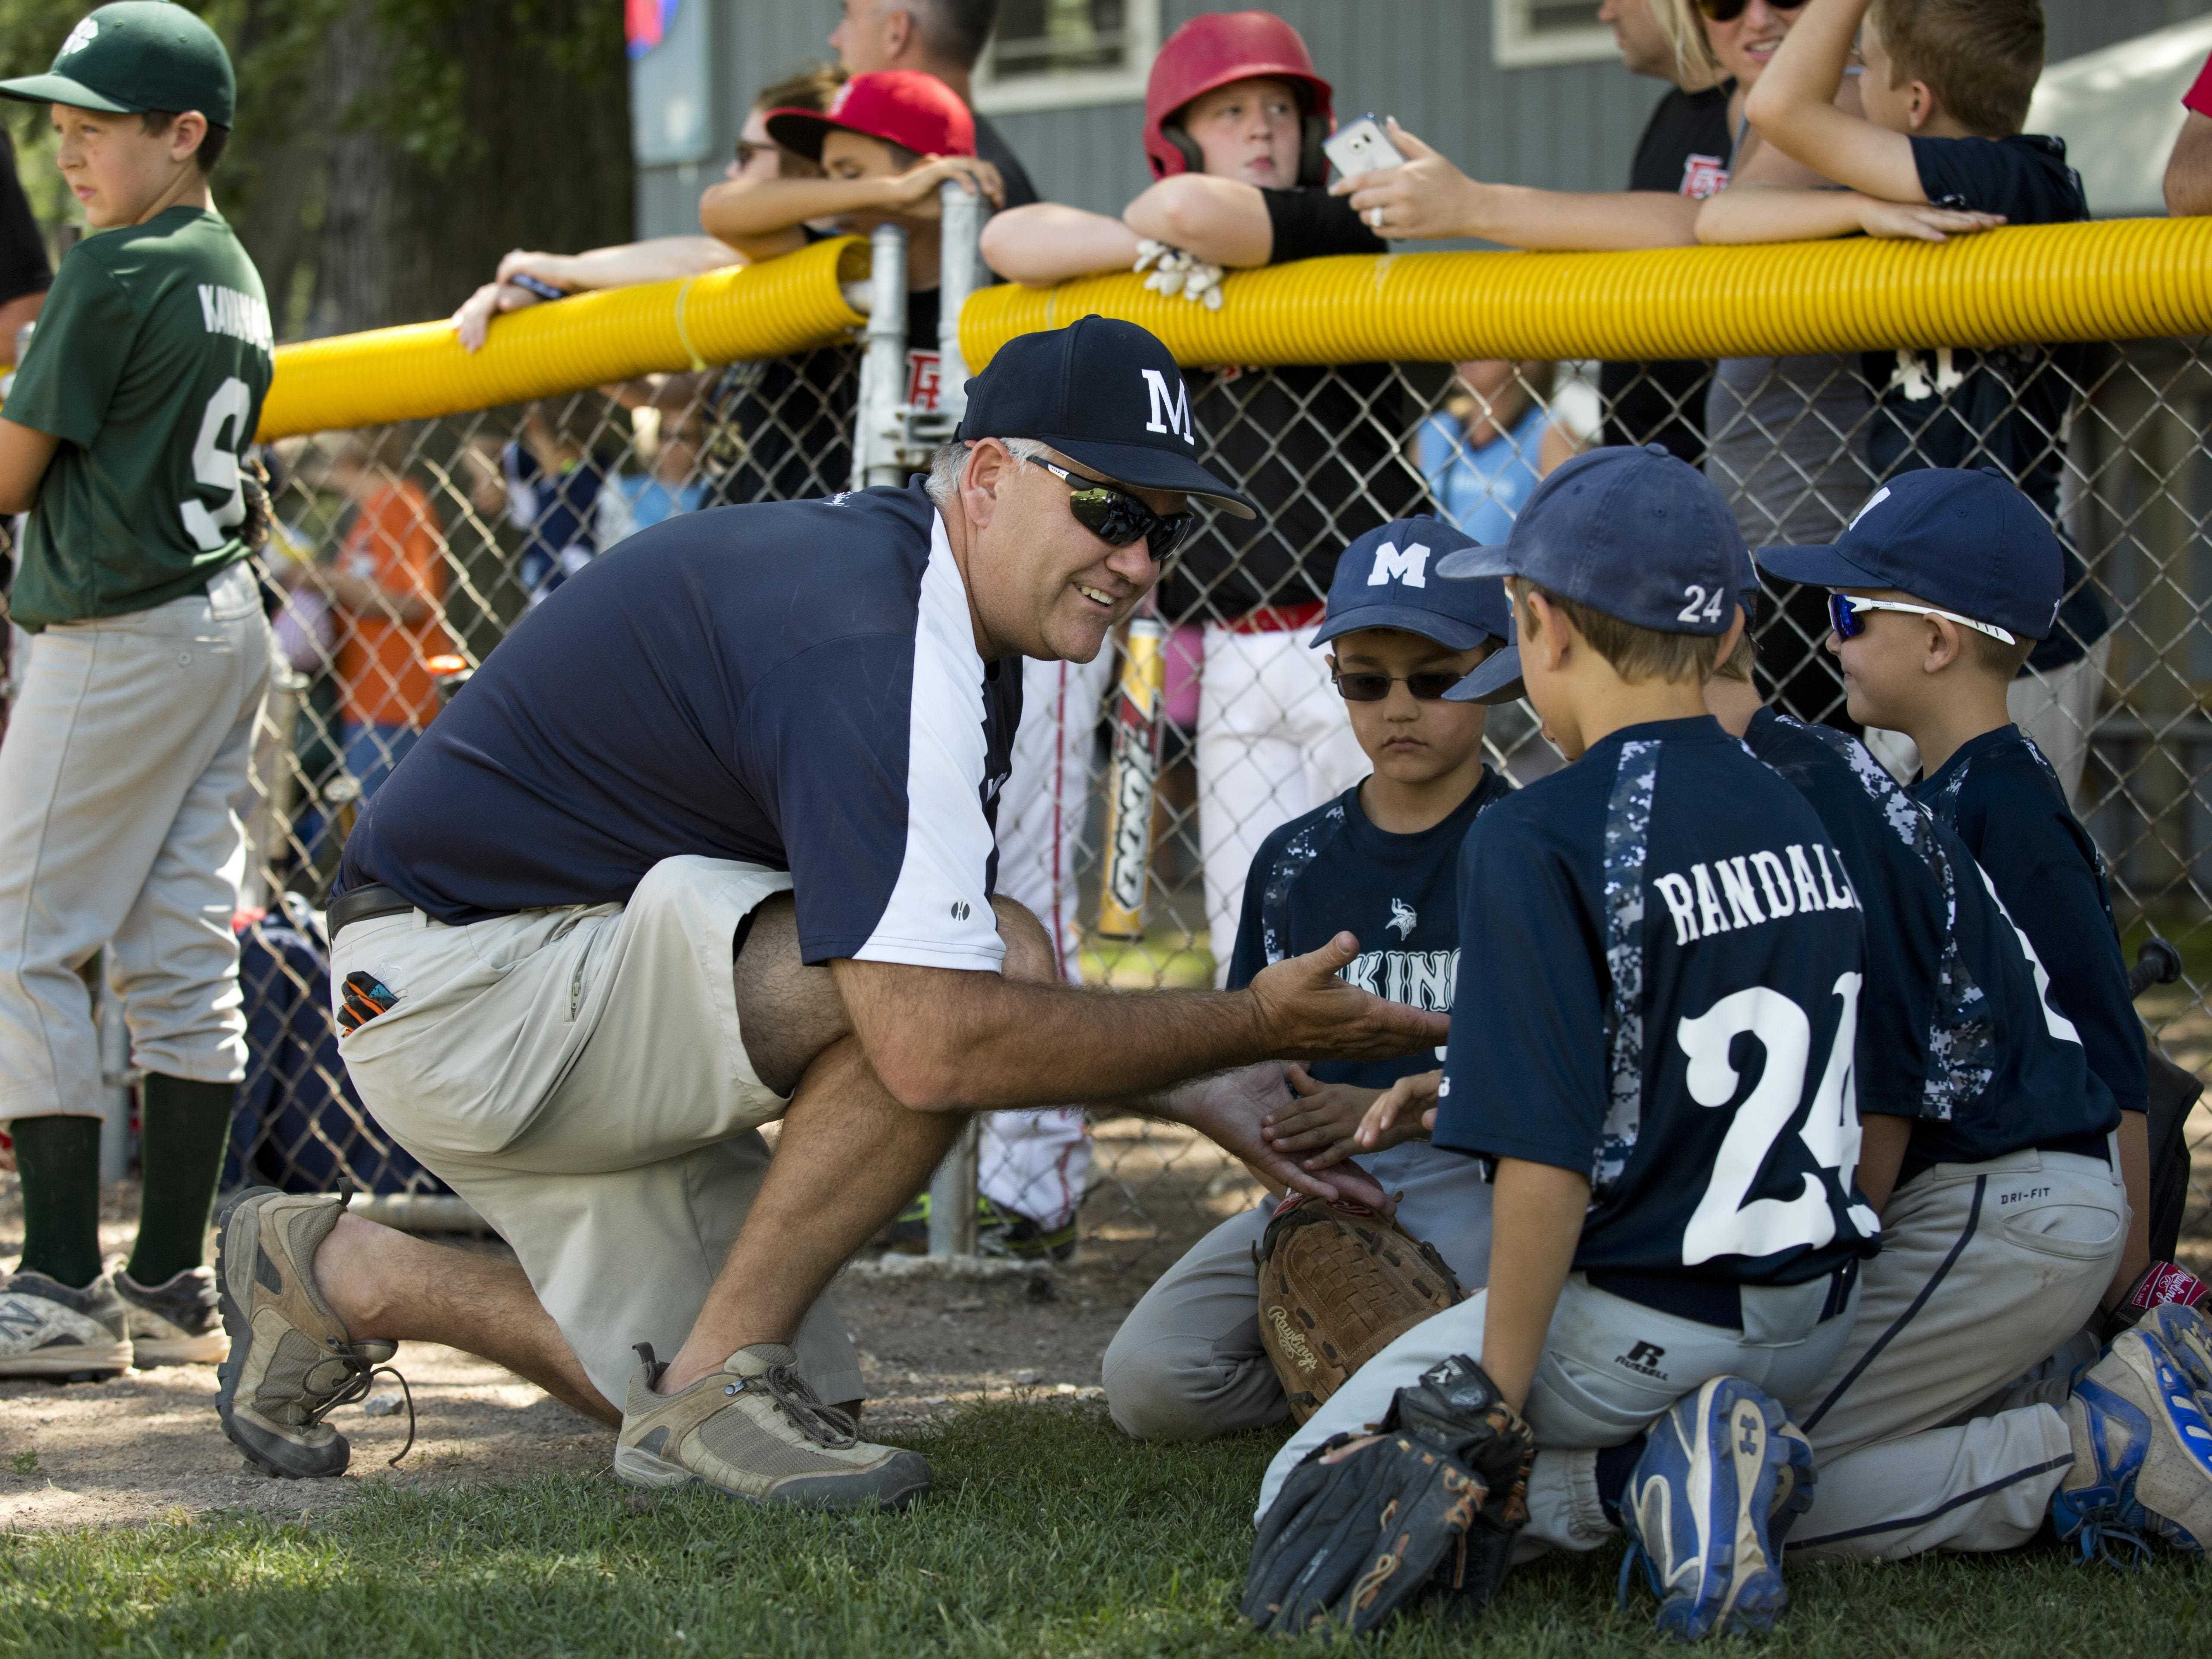 Marysville coach Don Paterson encourages players before the compete during a Little League skills competition Saturday, August 1, 2015 at Marysville City Park.